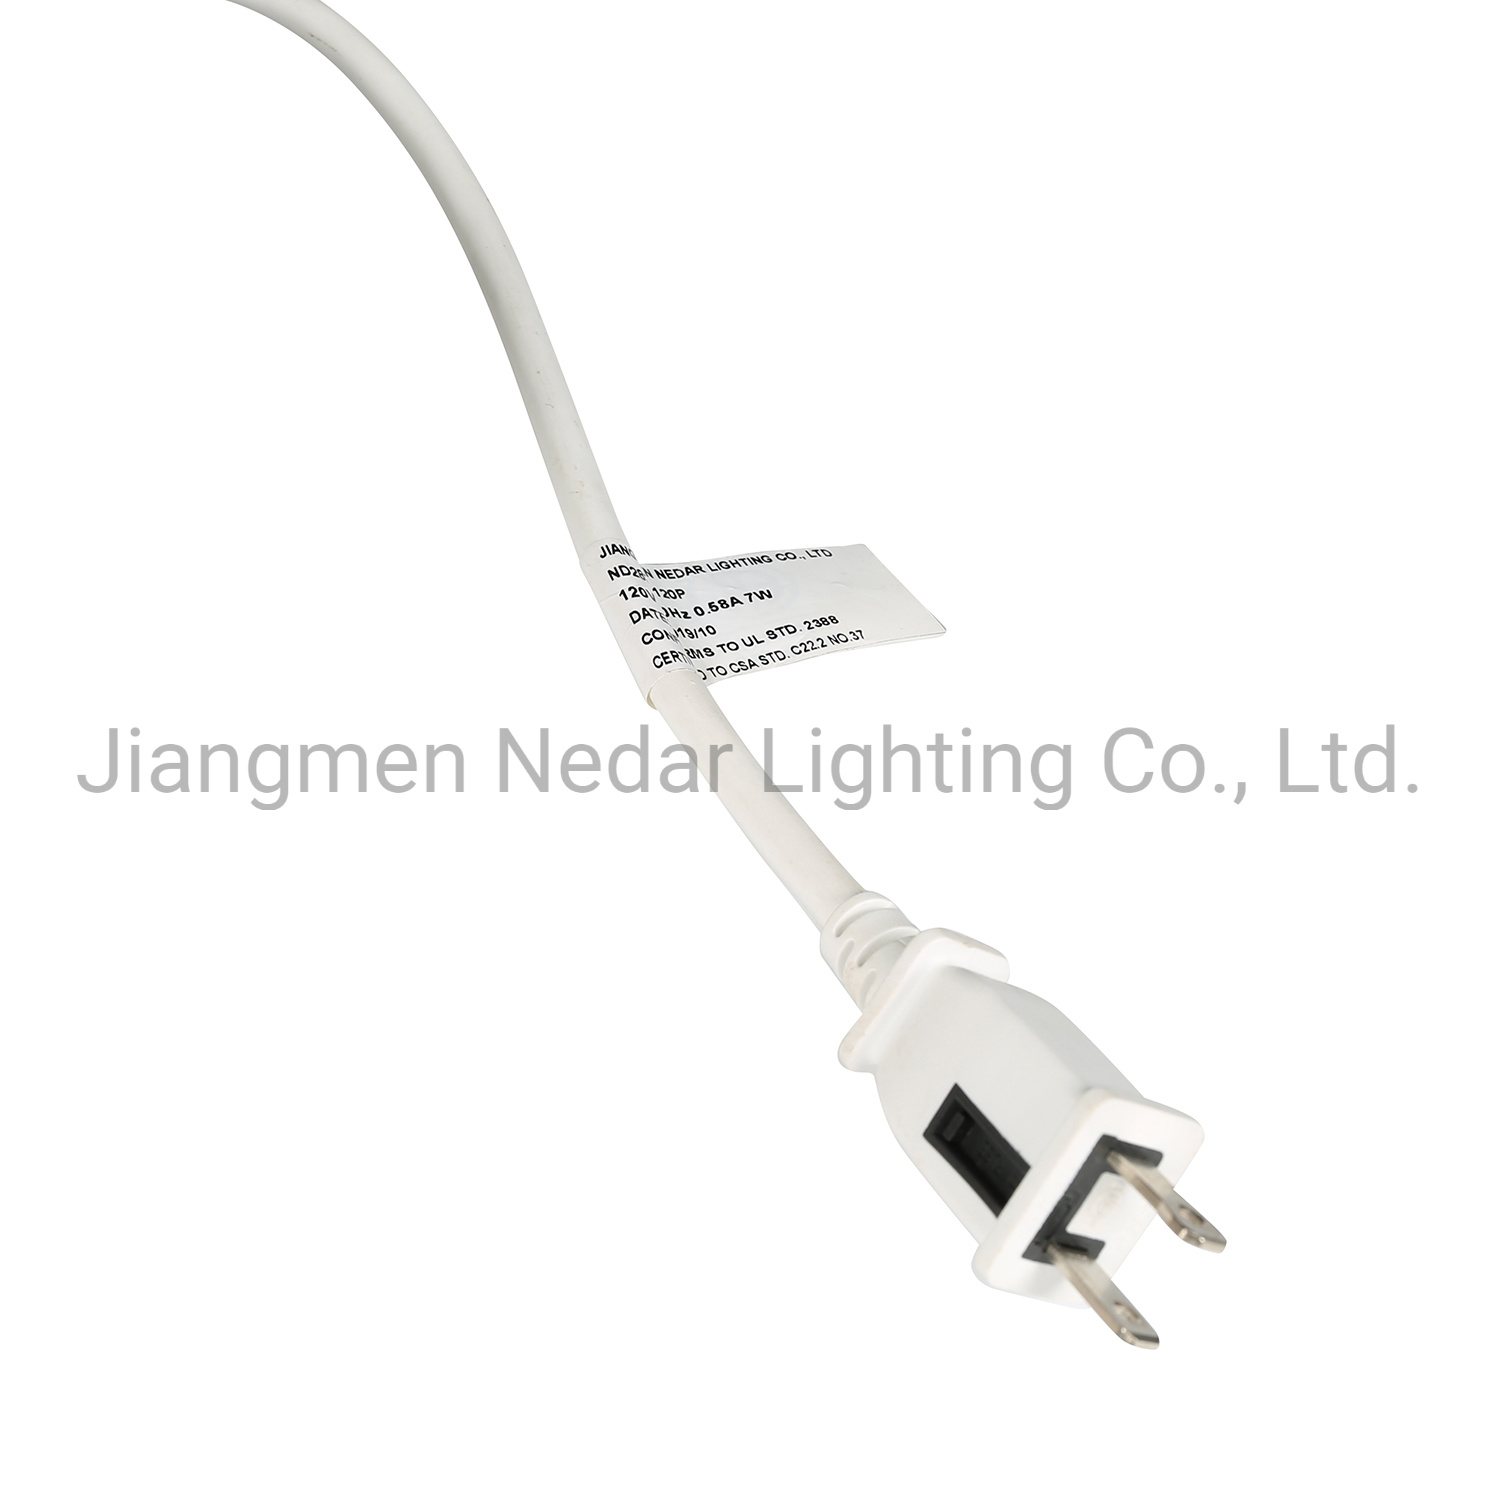 China Led Strip Light For Us Market Etl Certificate Smd2835 Bedroom Used Ceiling Used Photos Pictures Made In China Com